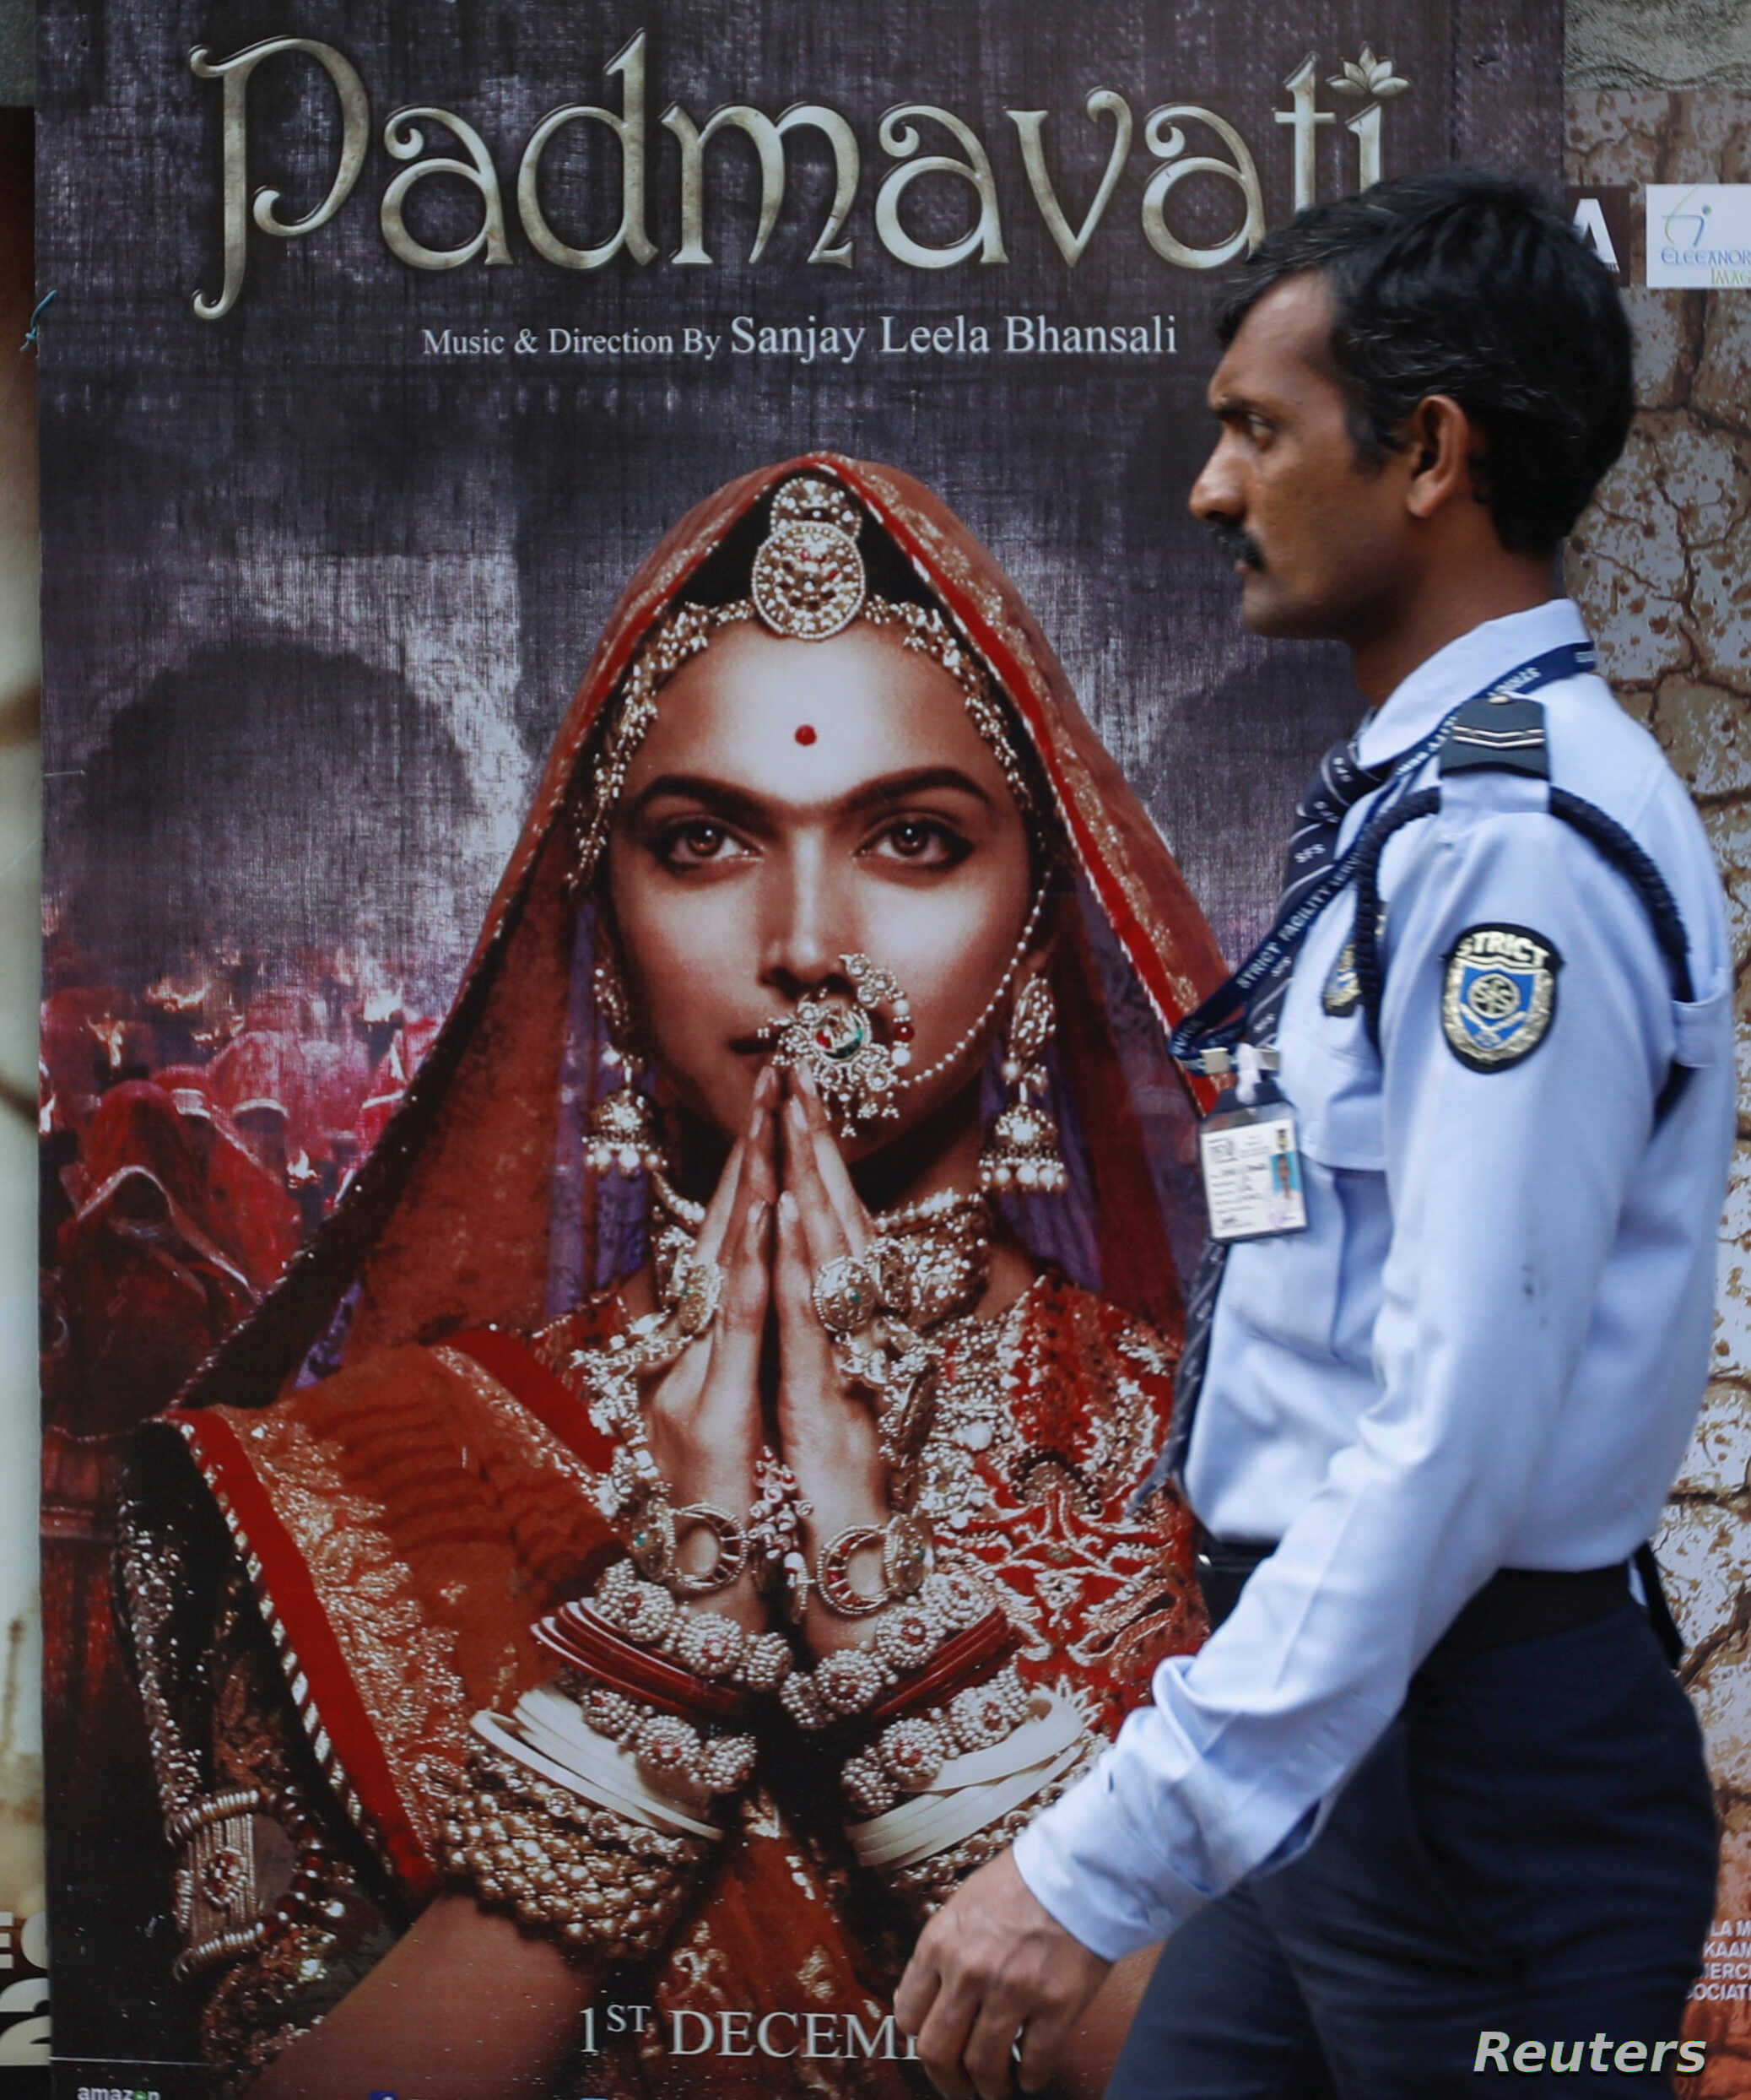 """A security guard walks past a poster of the upcoming Bollywood movie """"Padmavati"""" outside a theater in Mumbai, India, Nov. 21, 2017."""